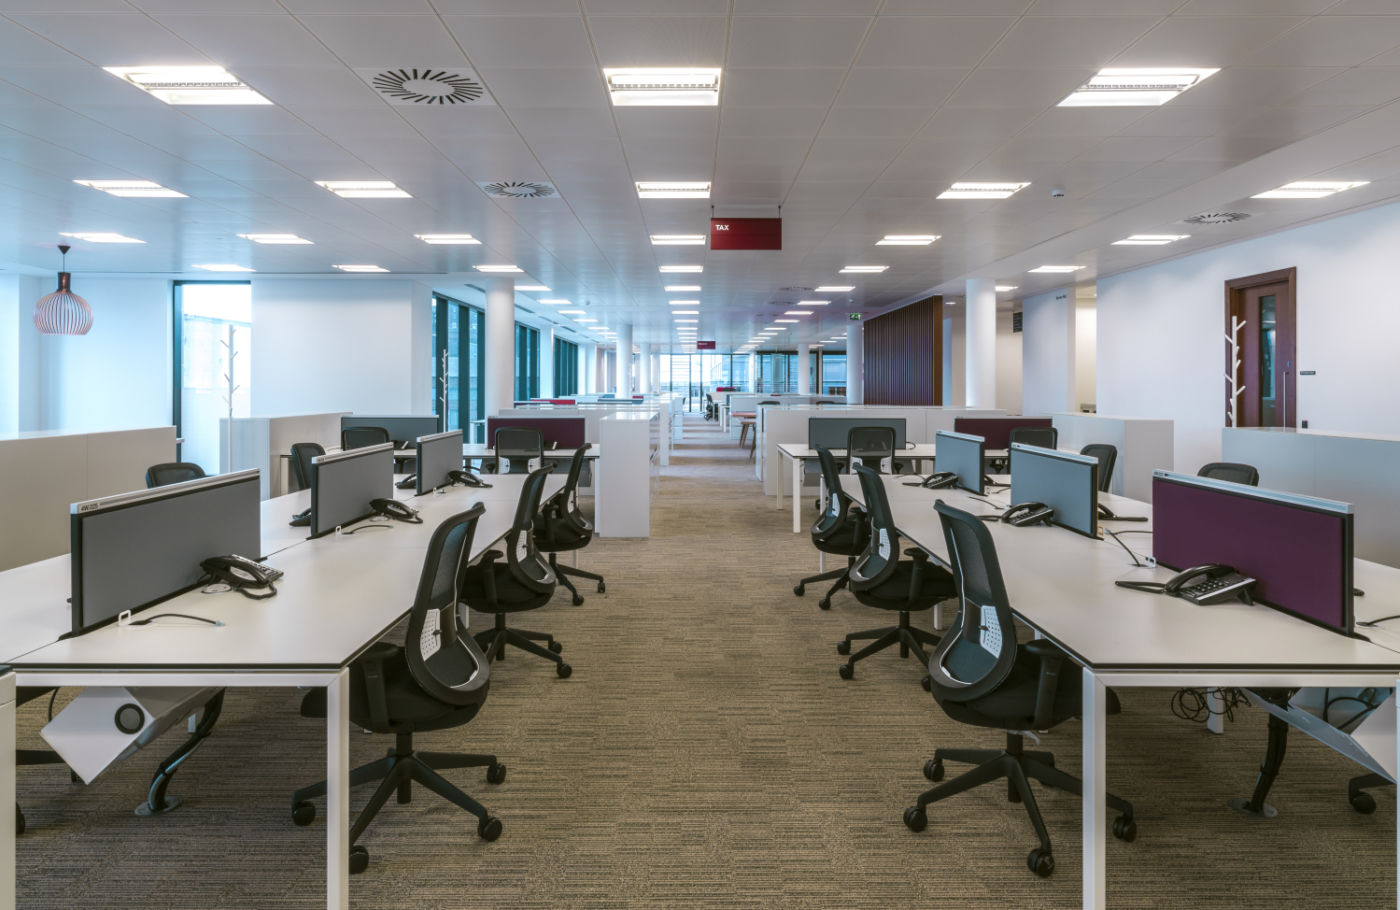 Open plan office with vacant workstations